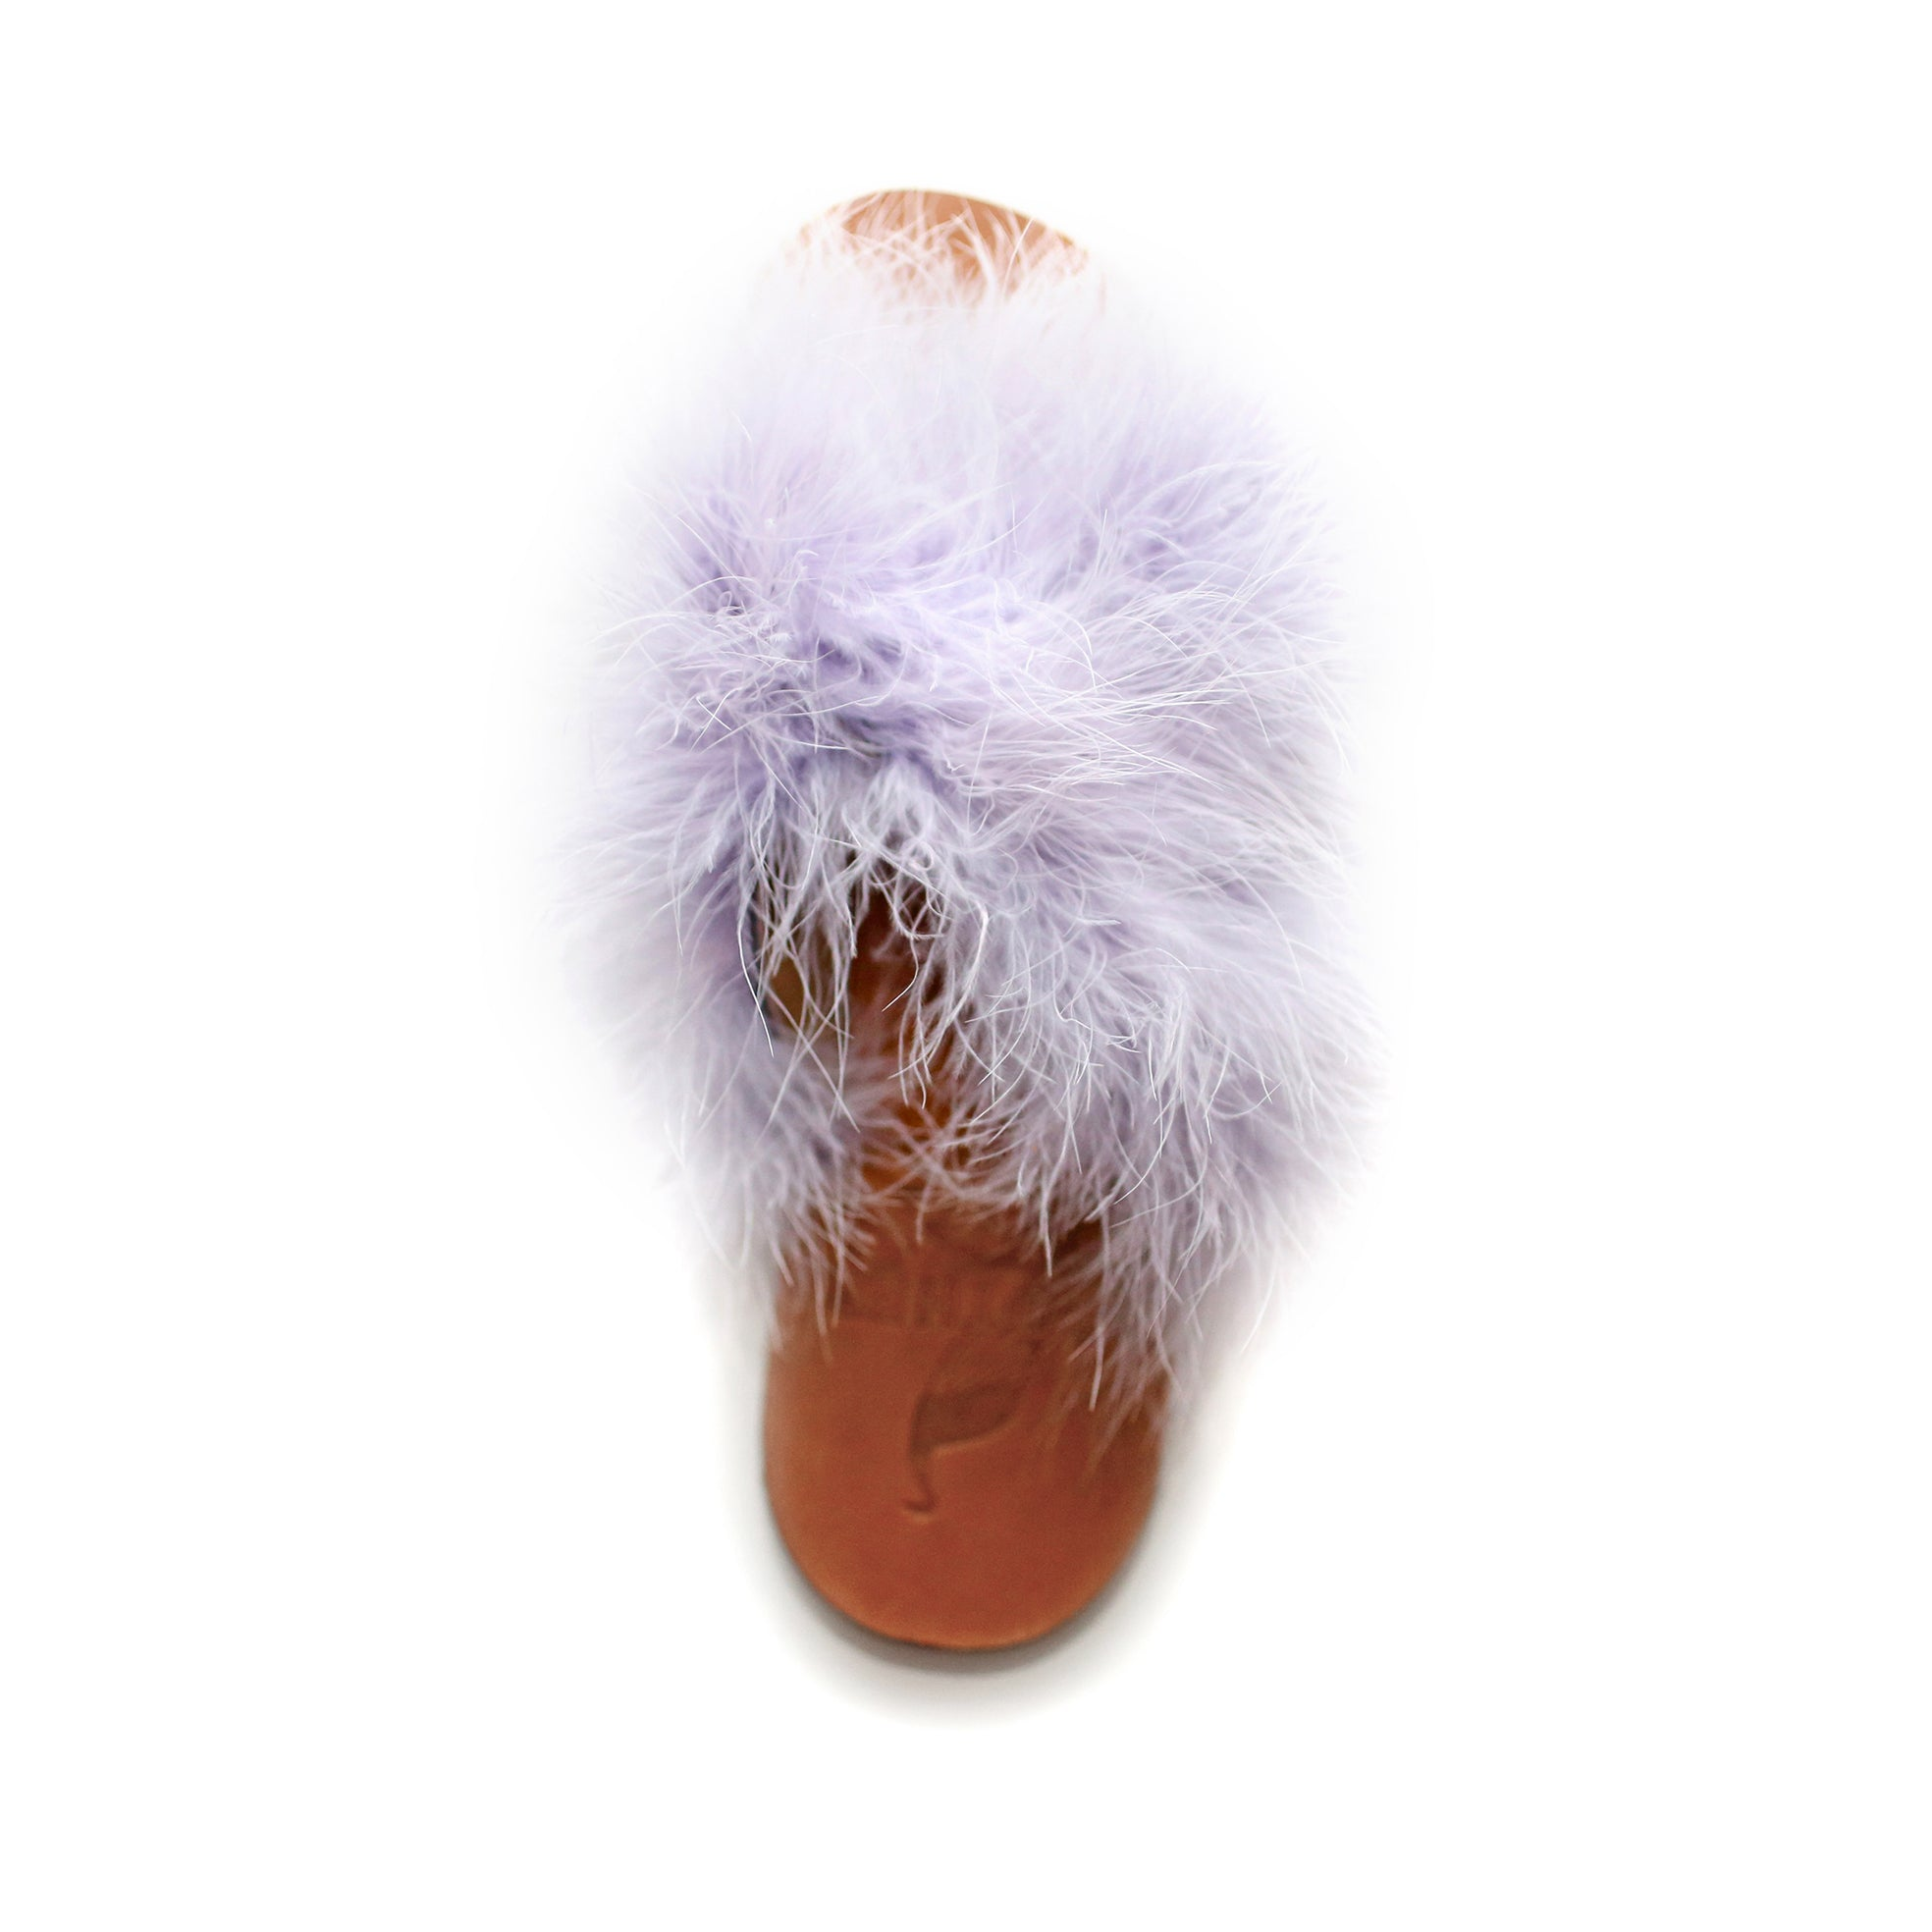 Brother Vellies Marabou Lamu Sandal Lavender on Well(un)known Available at wellunknown.com